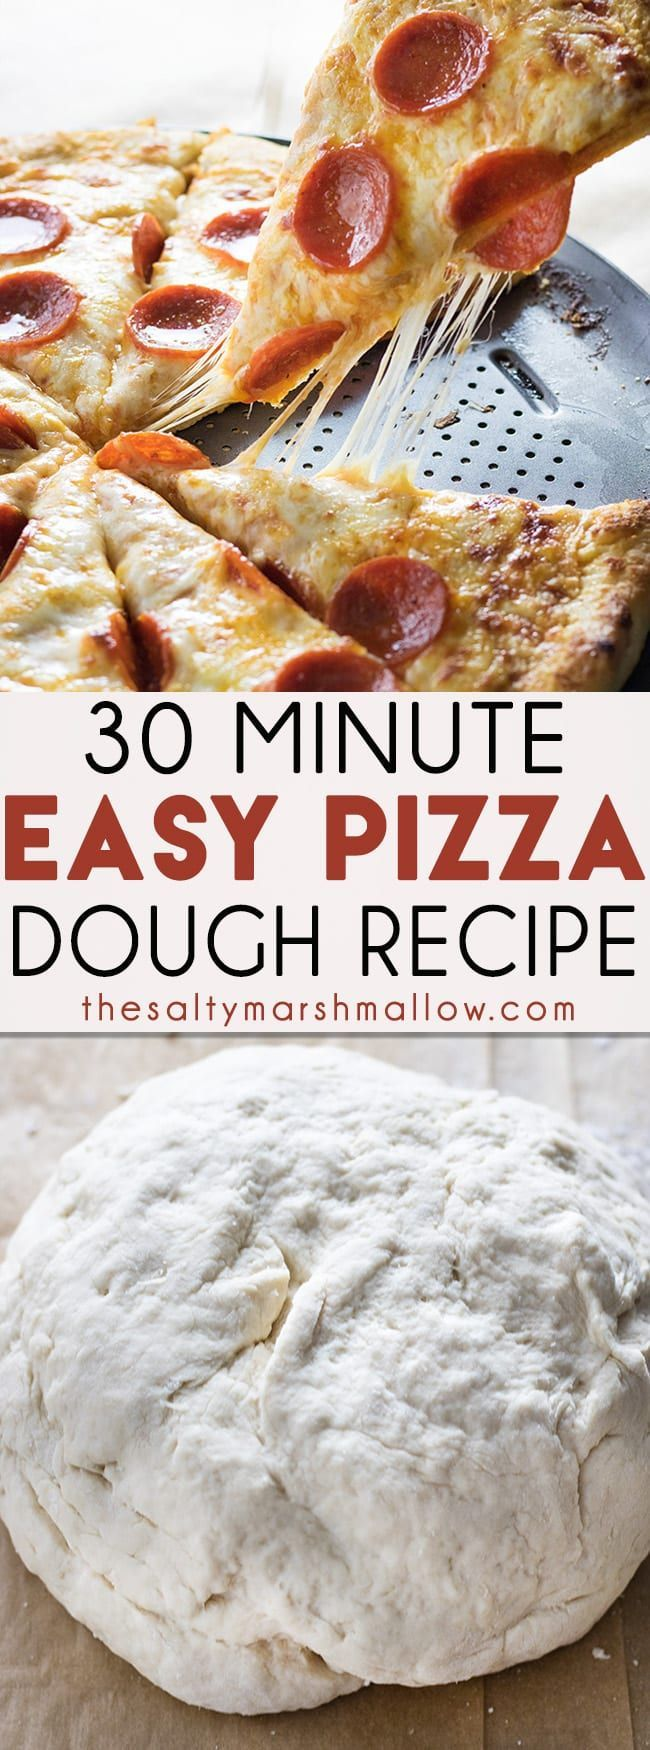 Easy Miracle Pizza Dough